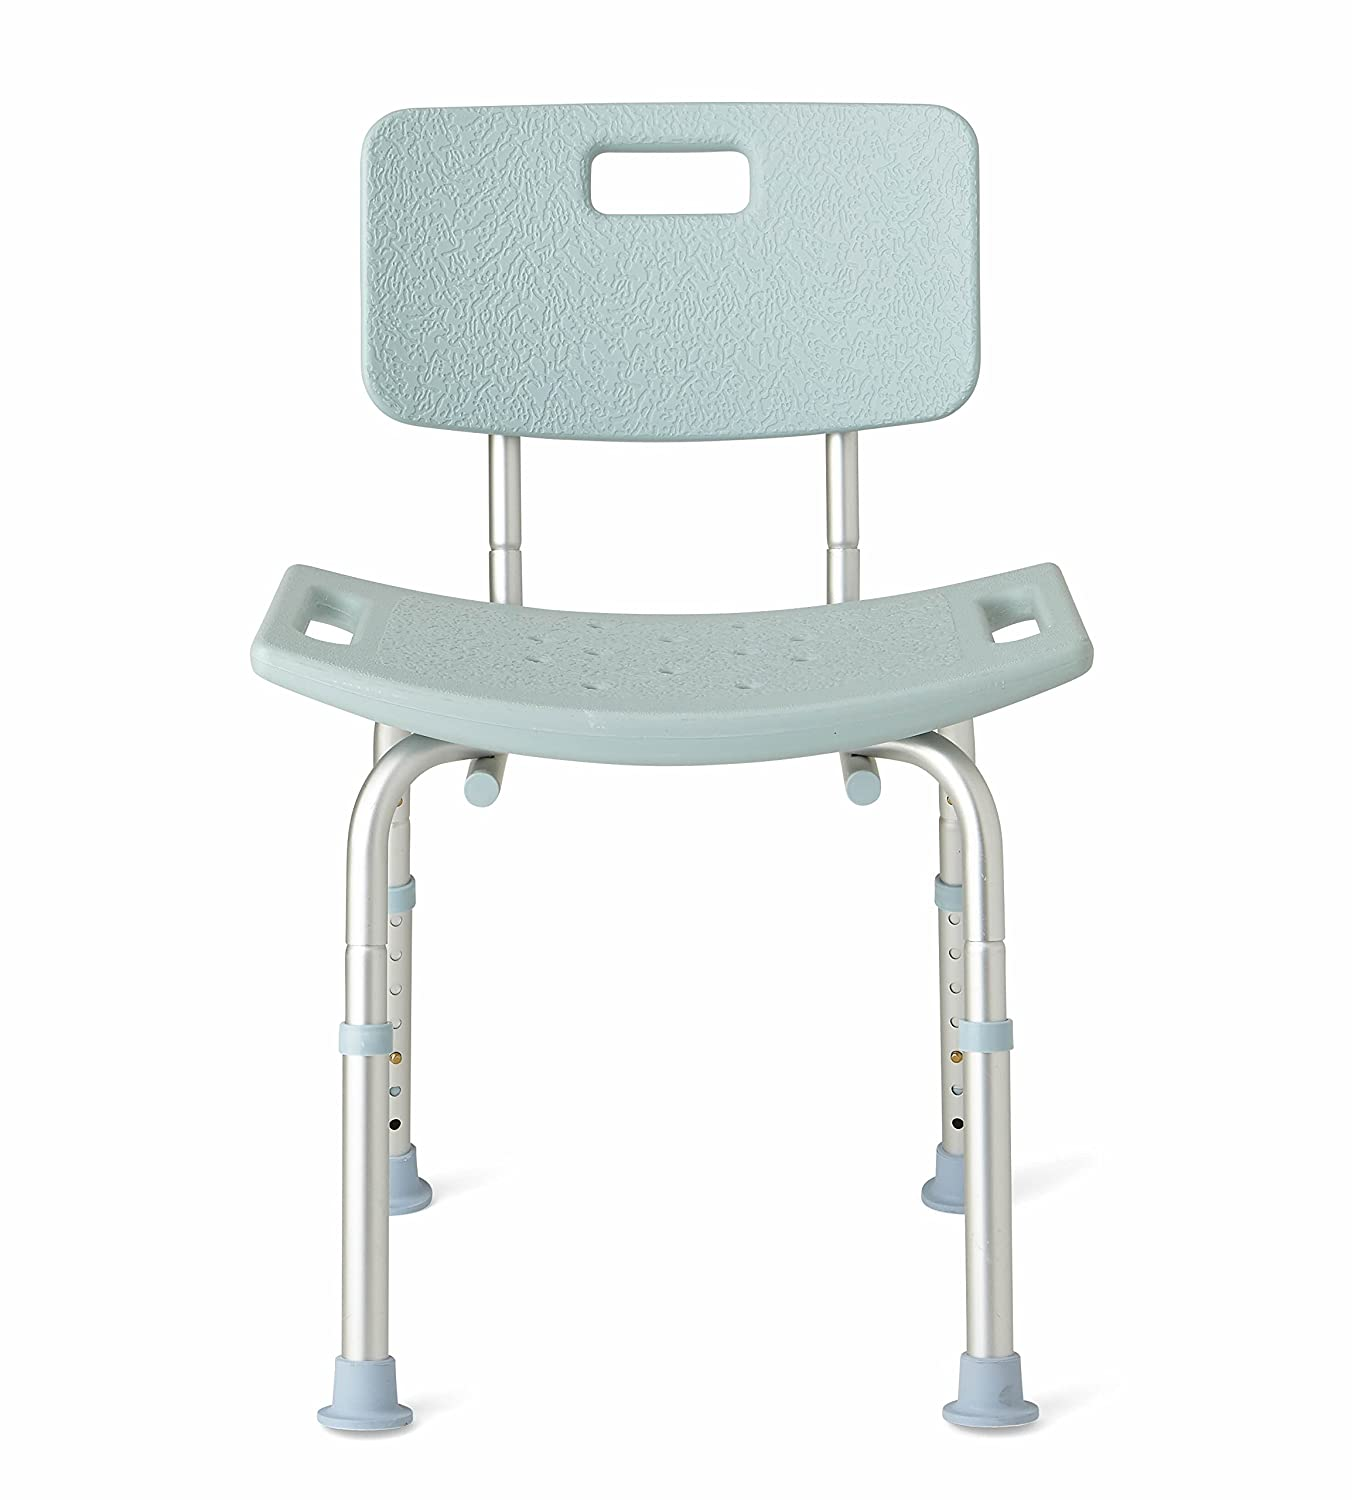 Amazon.com: Medline Bath Bench with Back, Microban: Health ...